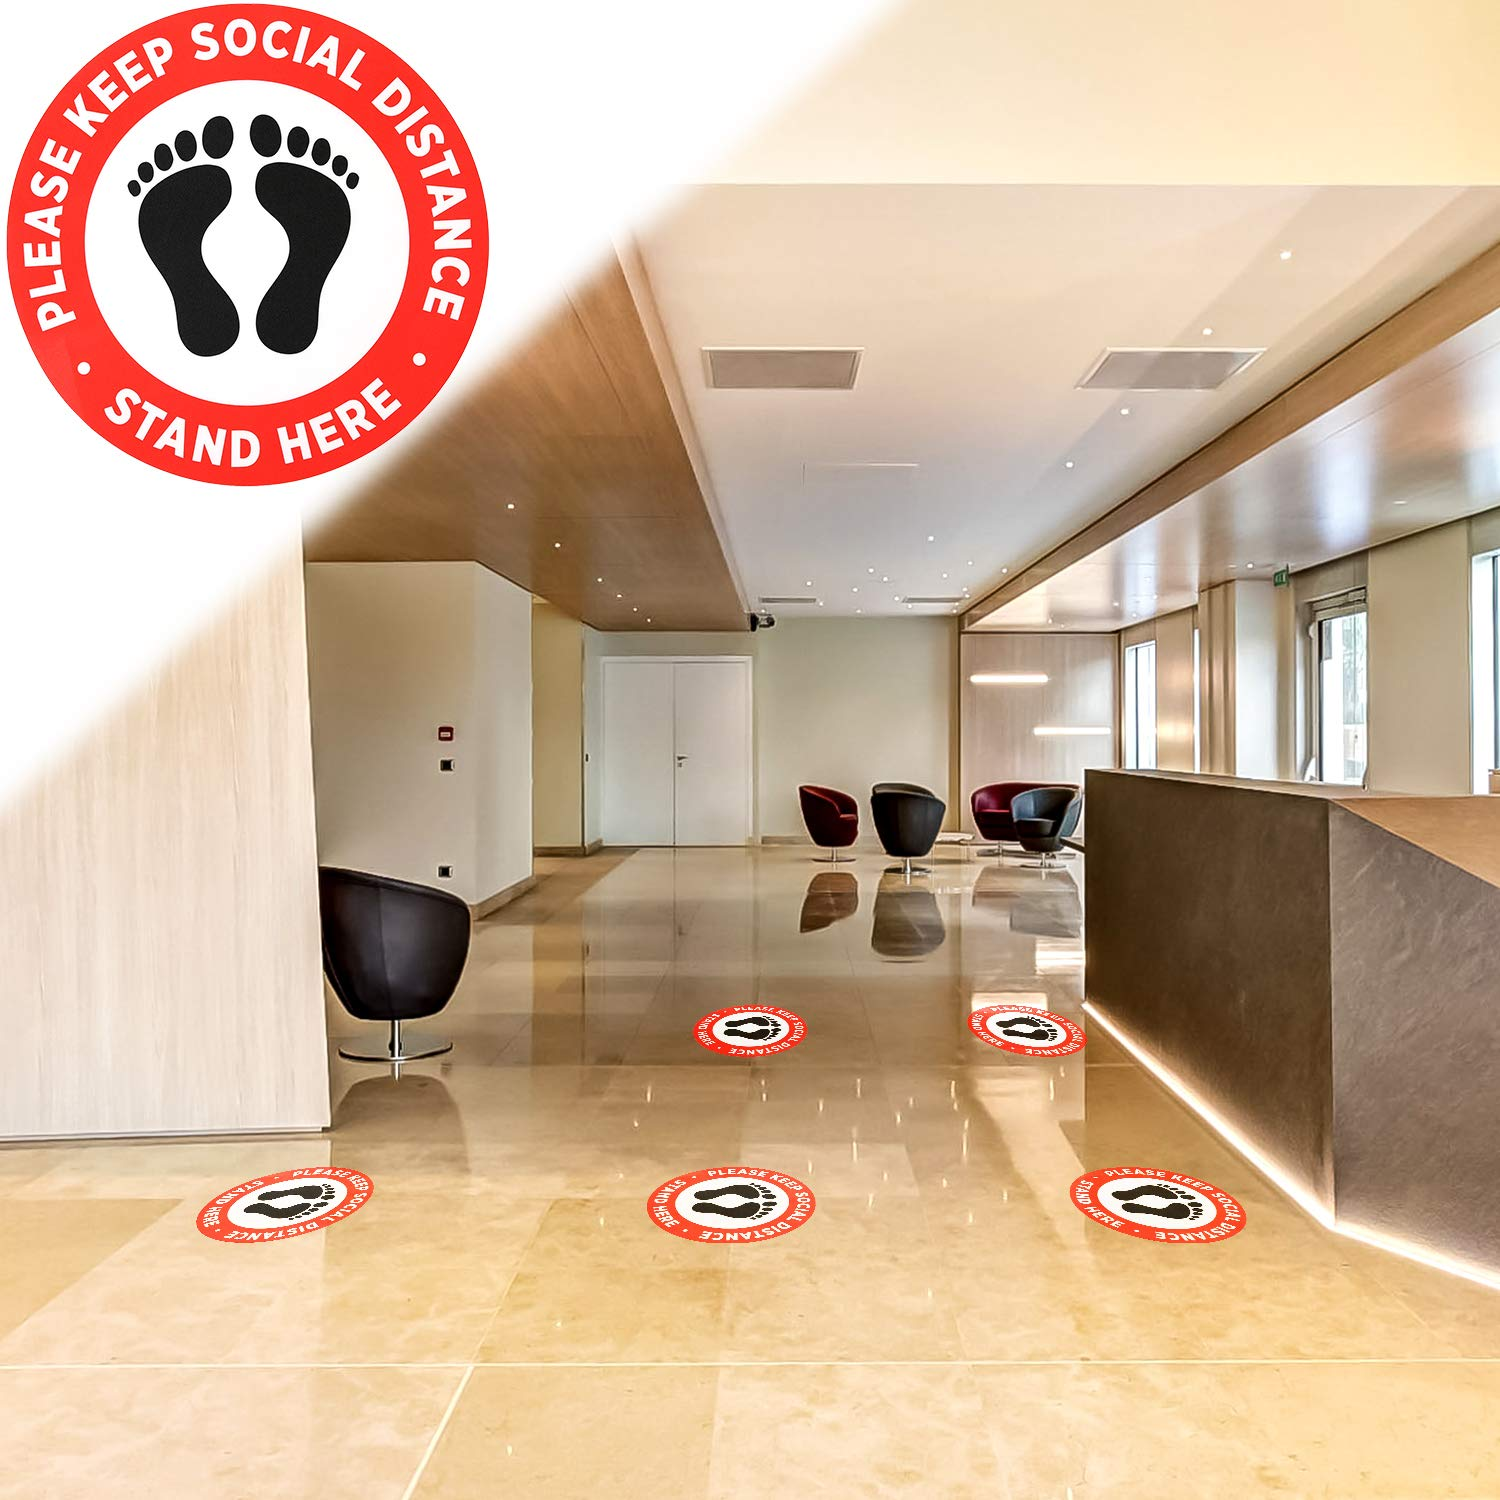 Schools Stand Stickers Super Markets 10 Pack 11.8 inches Round Waterproof Anti-Slip Removable Floor Signs for Crowd Guidance Control LUTER 6 Feet Stickers Social Distancing Floor Decals Banks